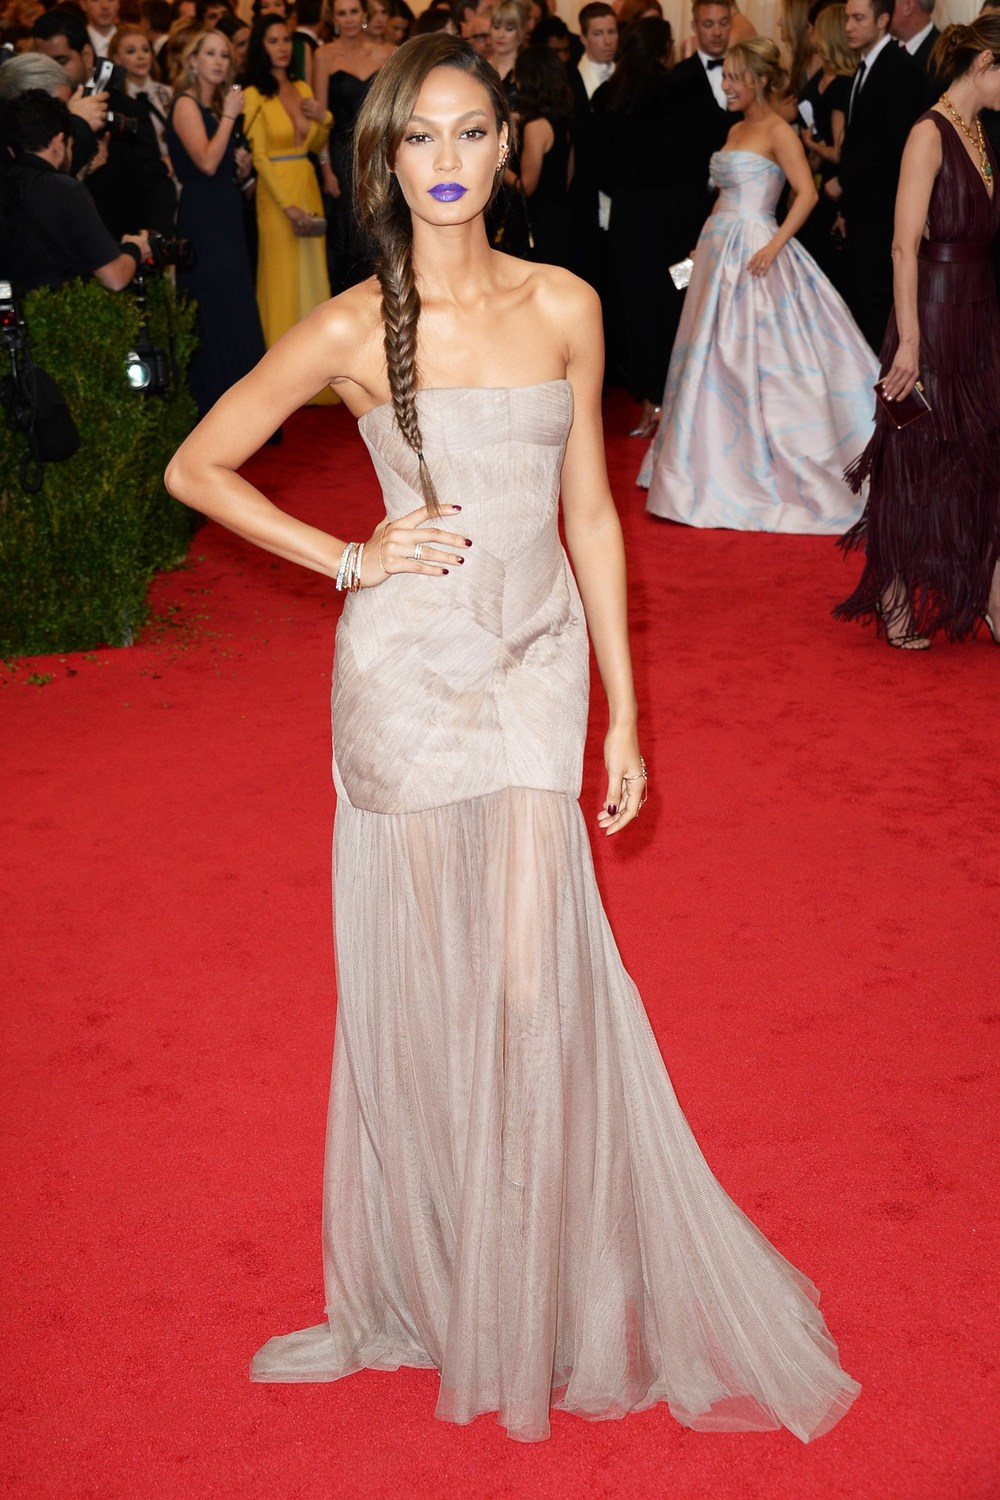 Joan Smalls wore a custom-made gown by Vera Wang.